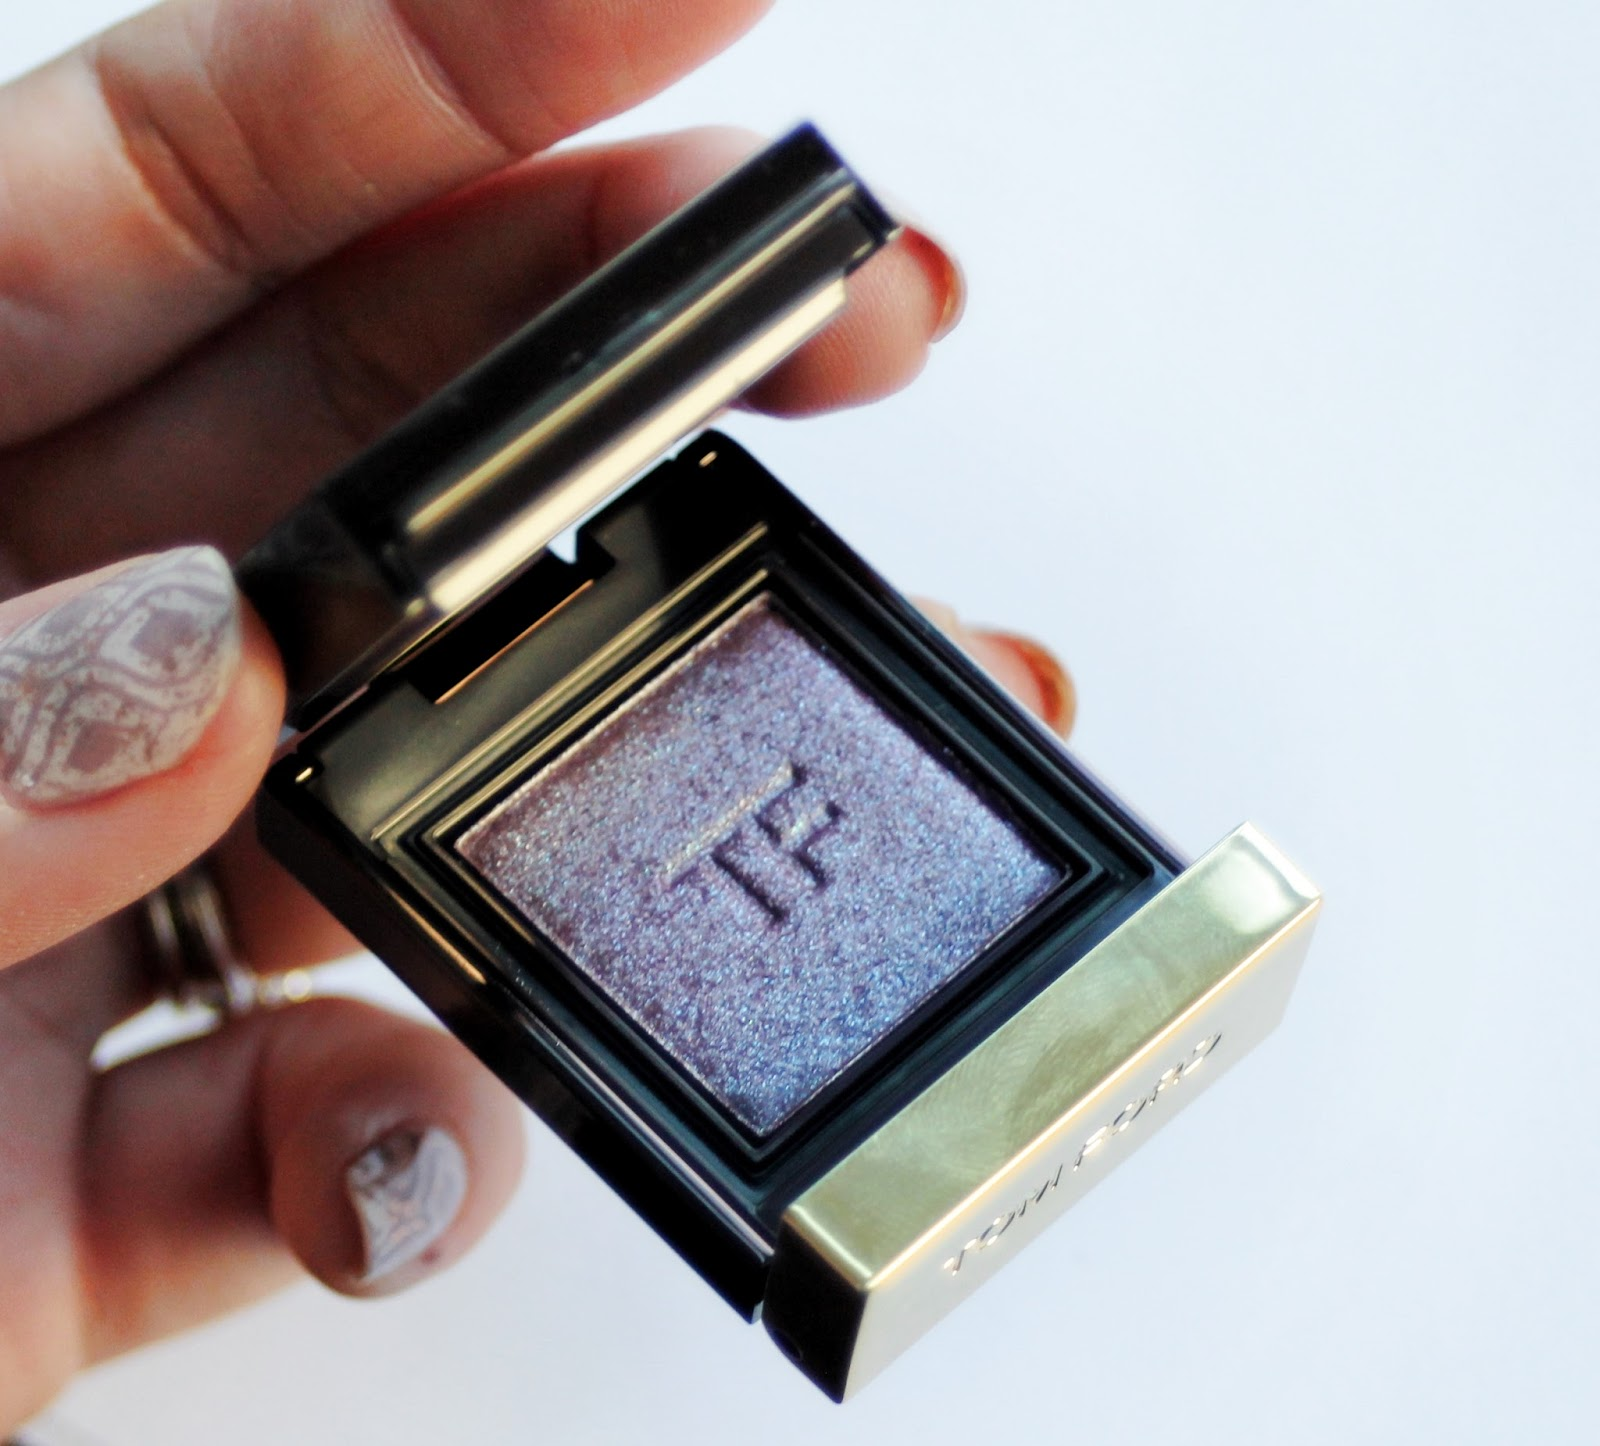 tom ford private eyeshadow camera obscura makeup. Black Bedroom Furniture Sets. Home Design Ideas